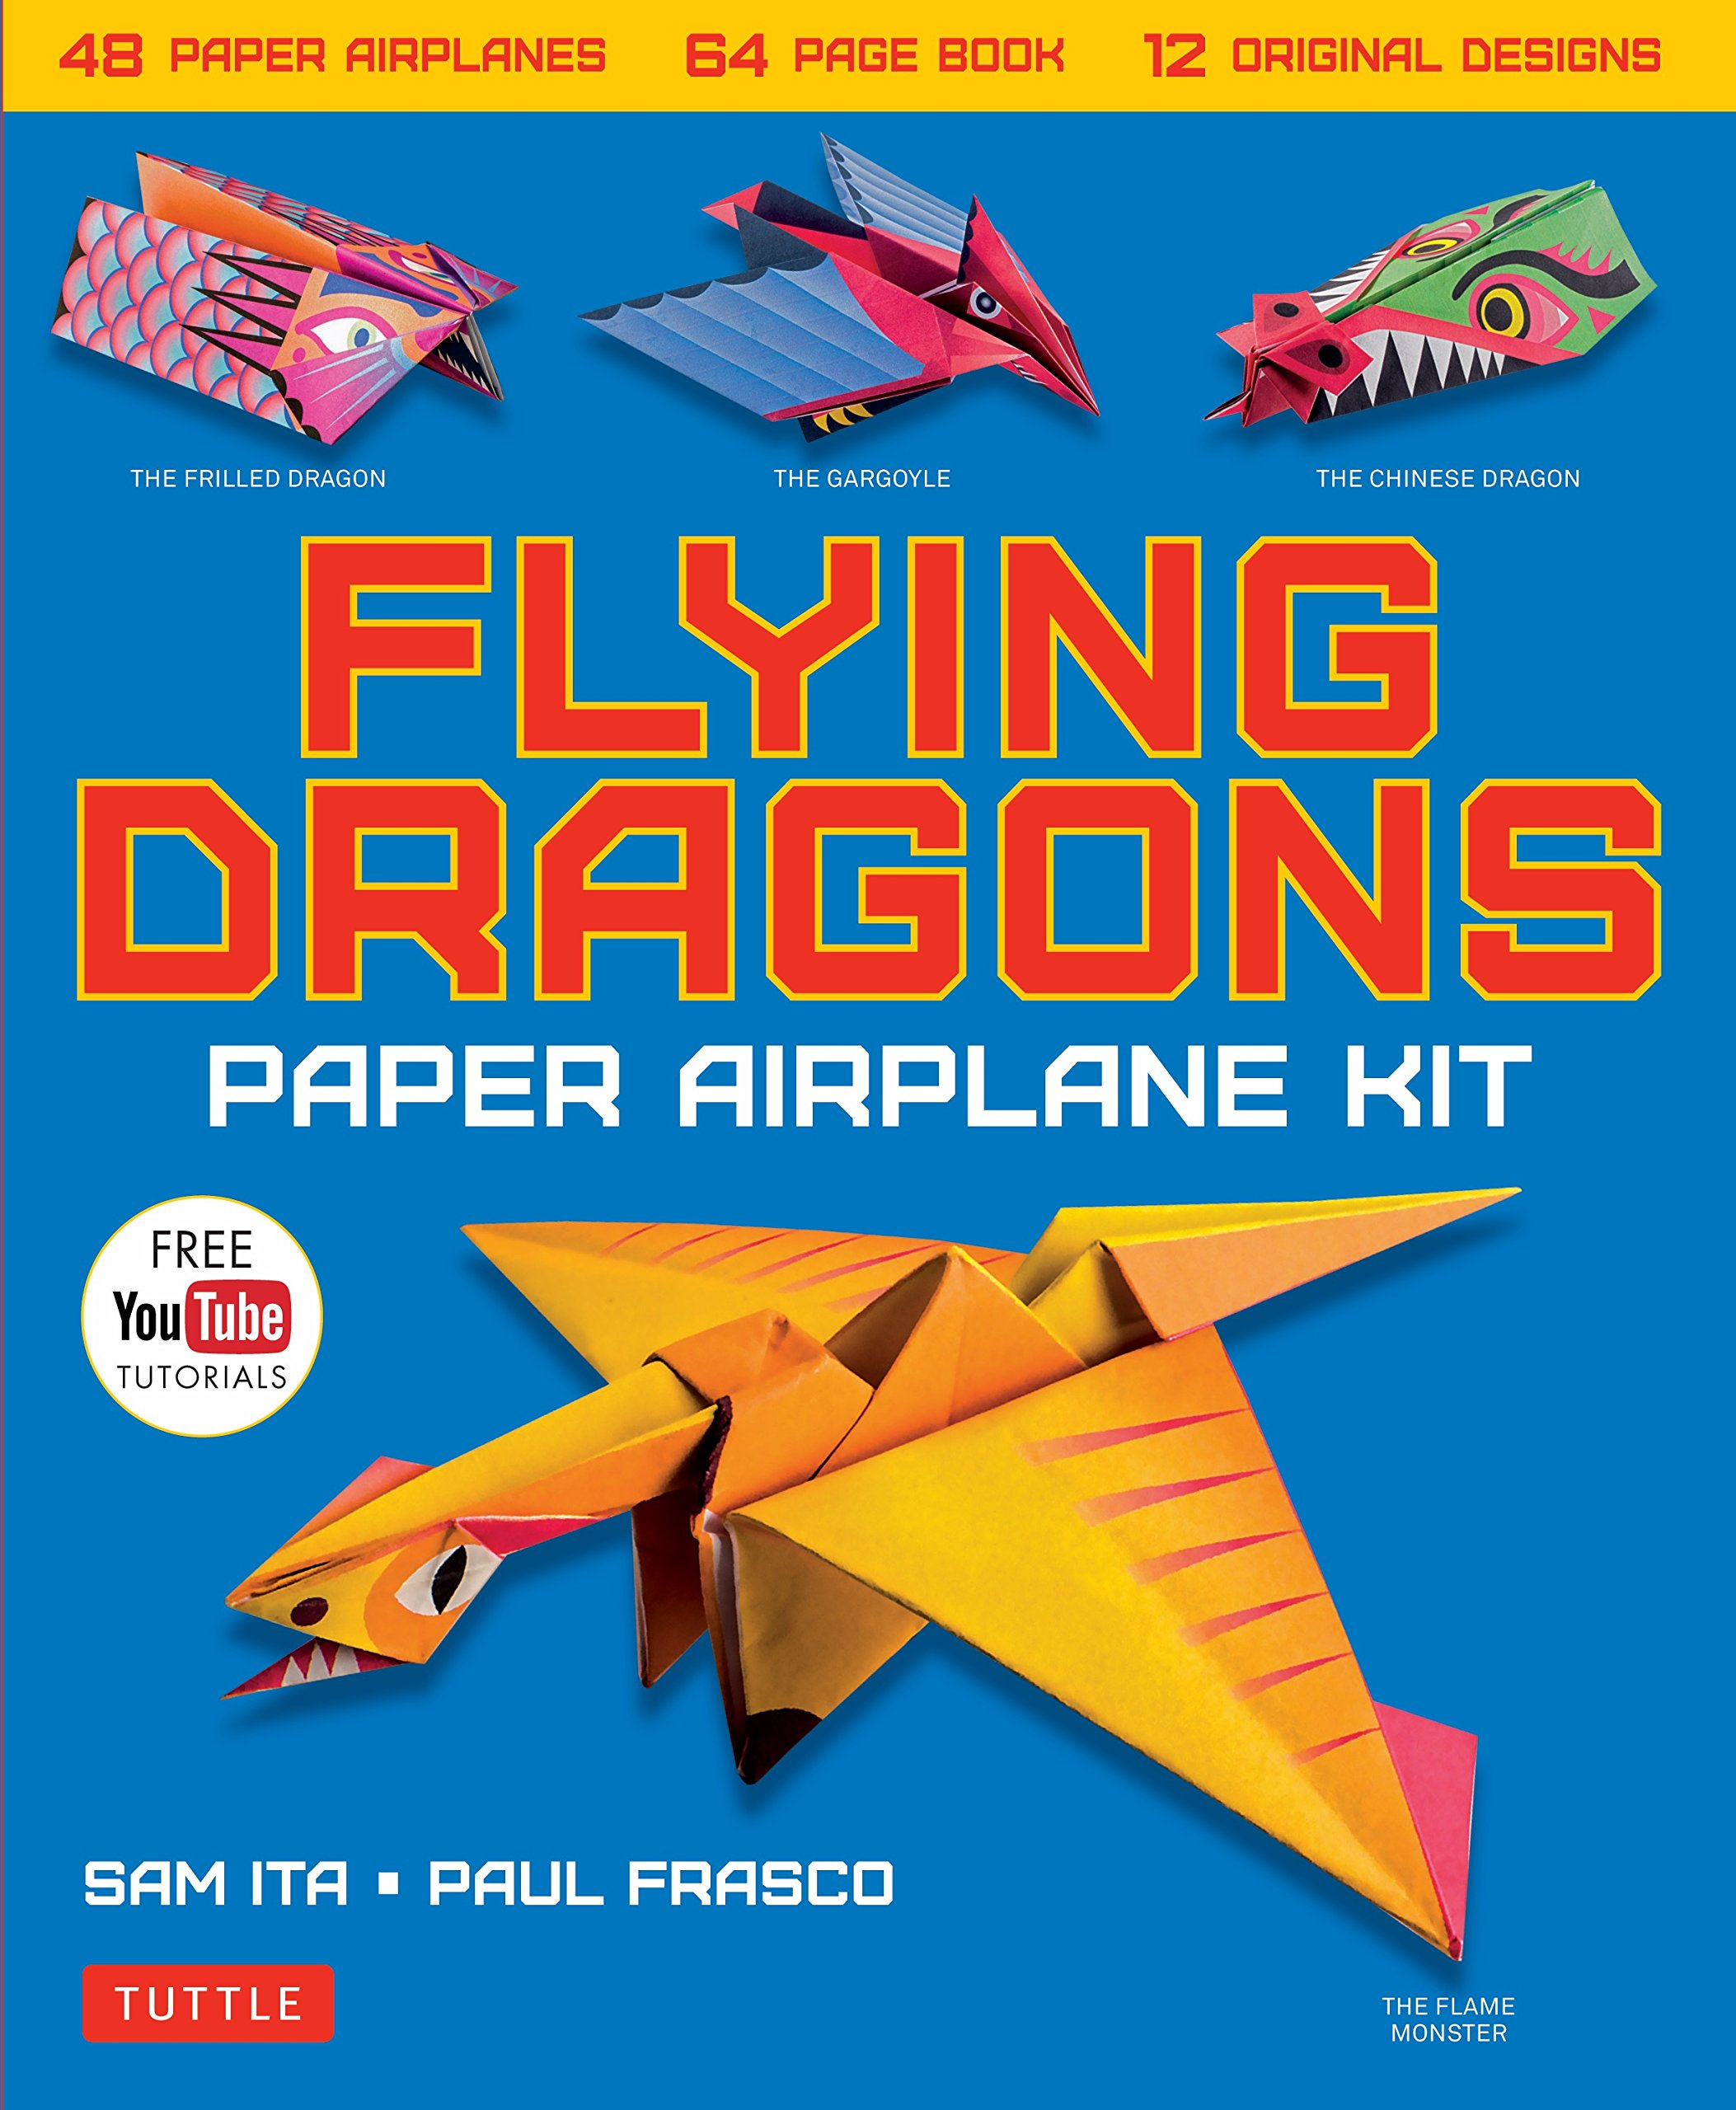 Cheap Paper Airplanes Flying Find Deals On Kite Diagrams Youtube Get Quotations Dragons Airplane Kit 48 64 Page Instruction Book 12